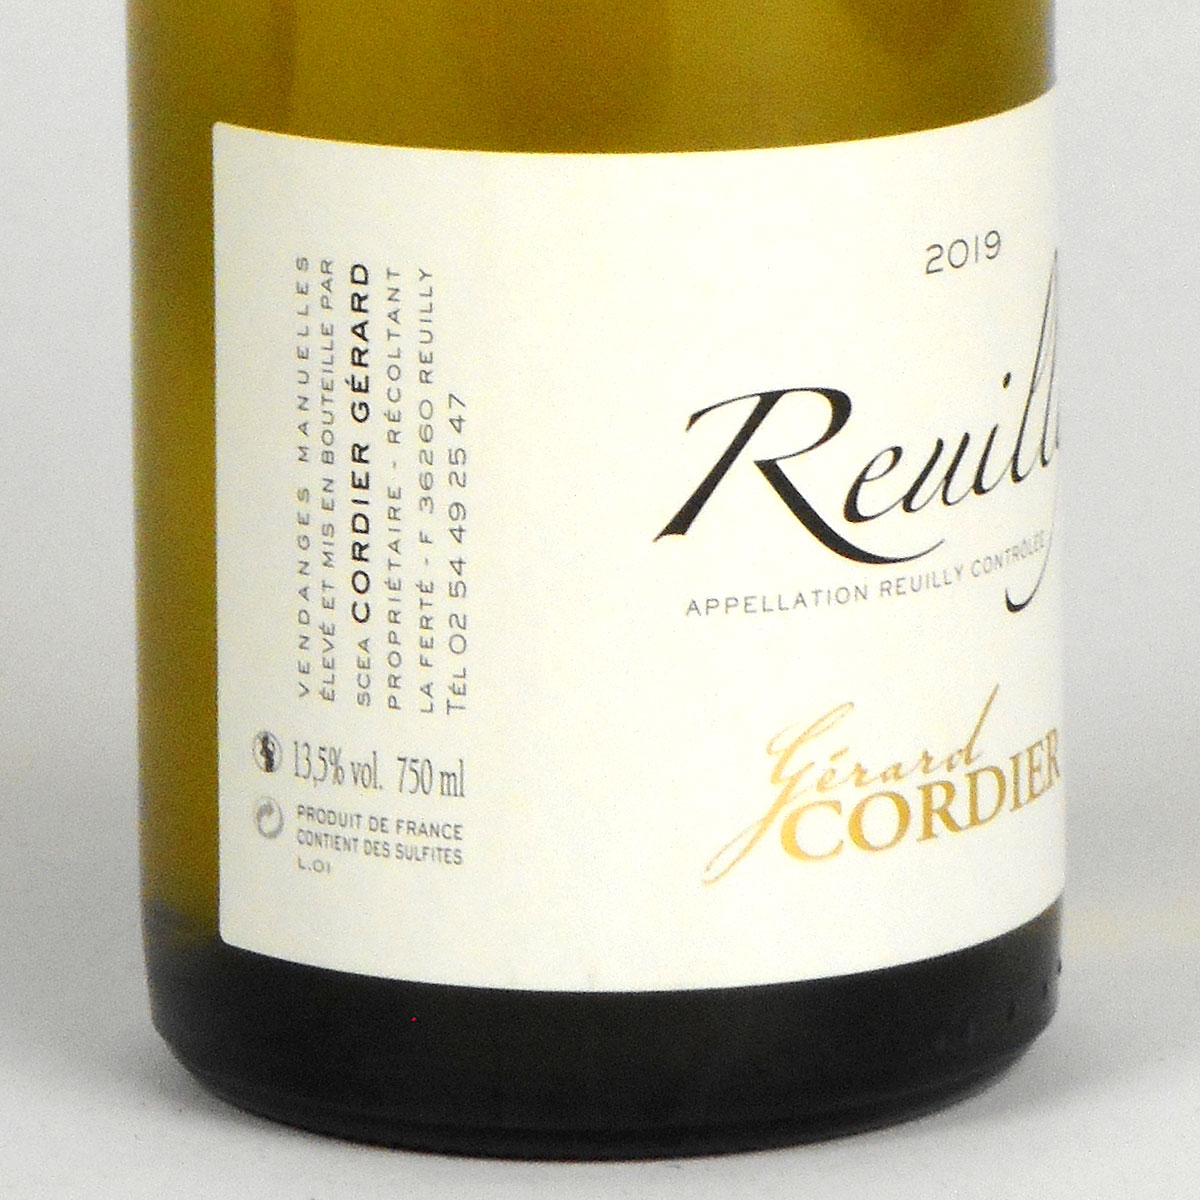 Reuilly: Gerard Cordier Blanc 2019 - Bottle Side Label